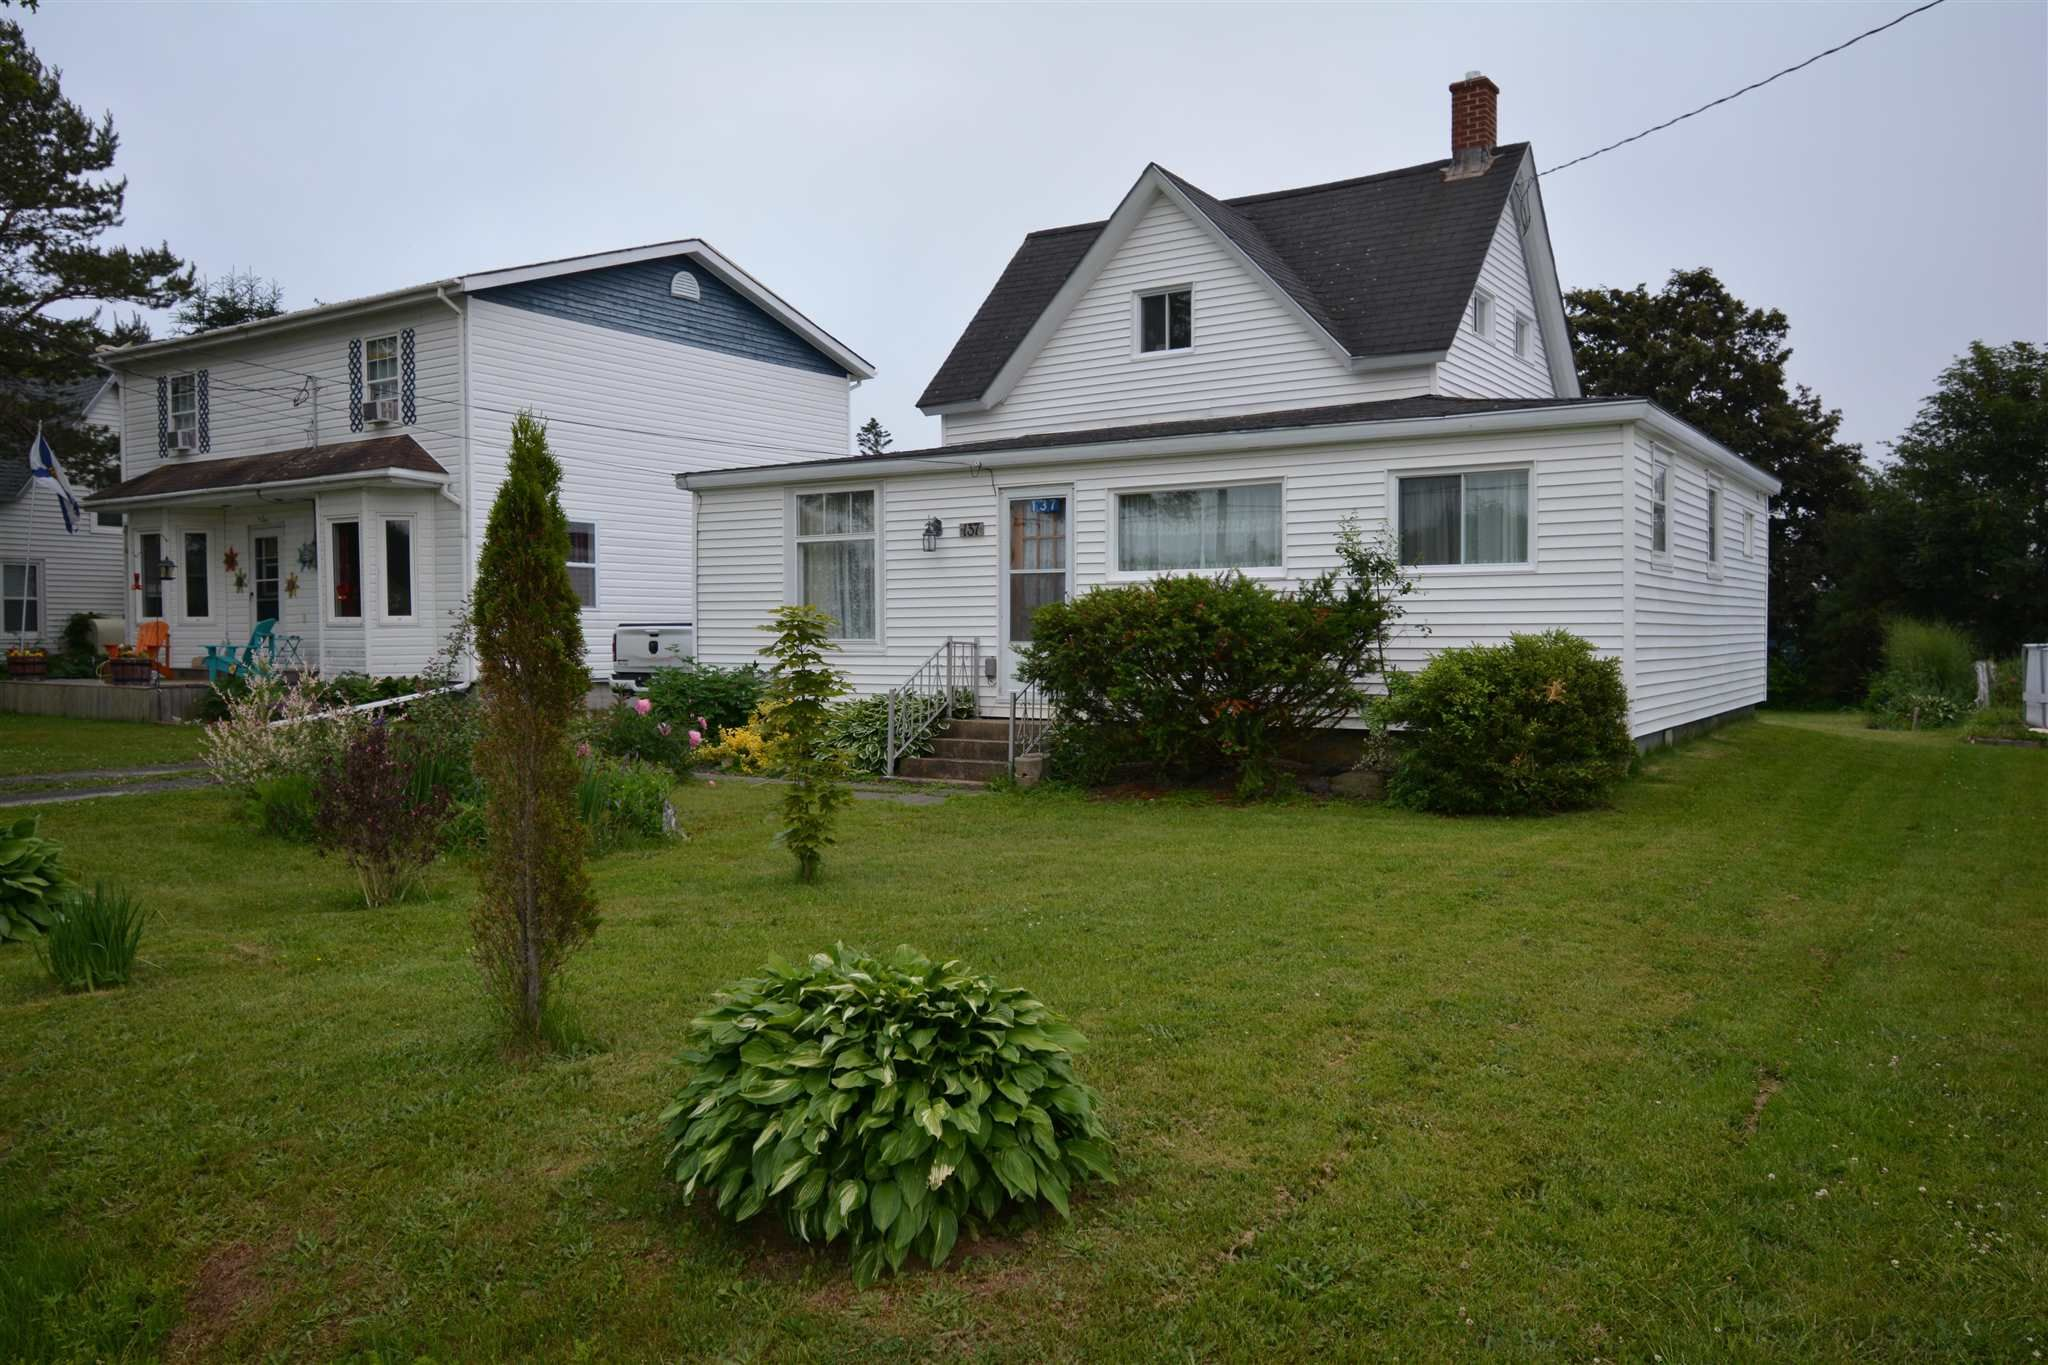 Main Photo: 137 CULLODEN Road in Mount Pleasant: 401-Digby County Residential for sale (Annapolis Valley)  : MLS®# 202116193